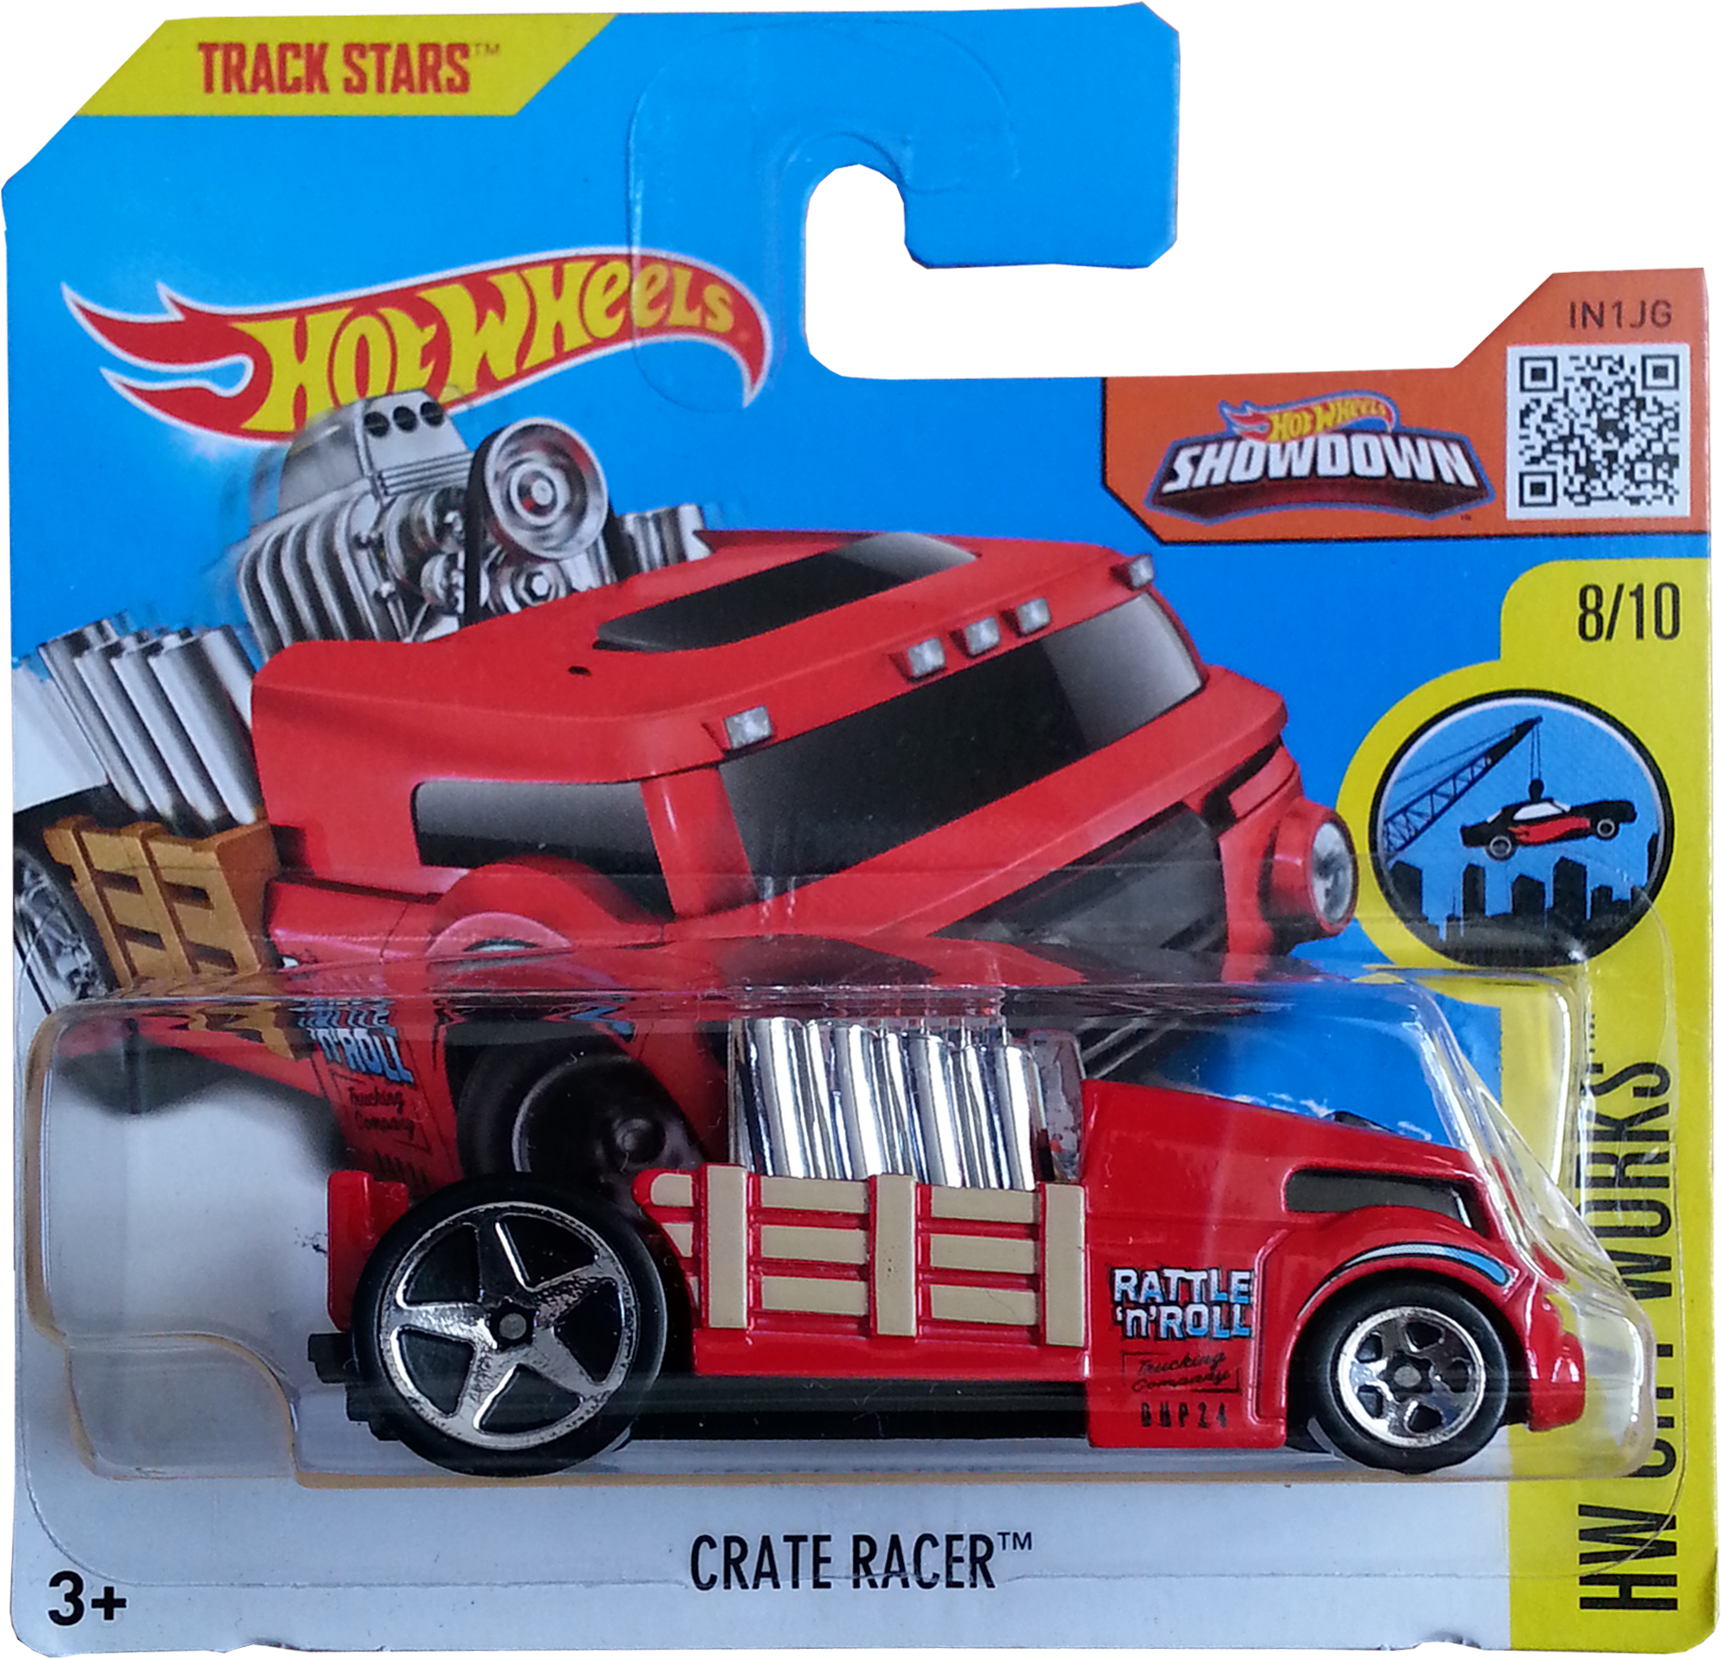 Crate Racer